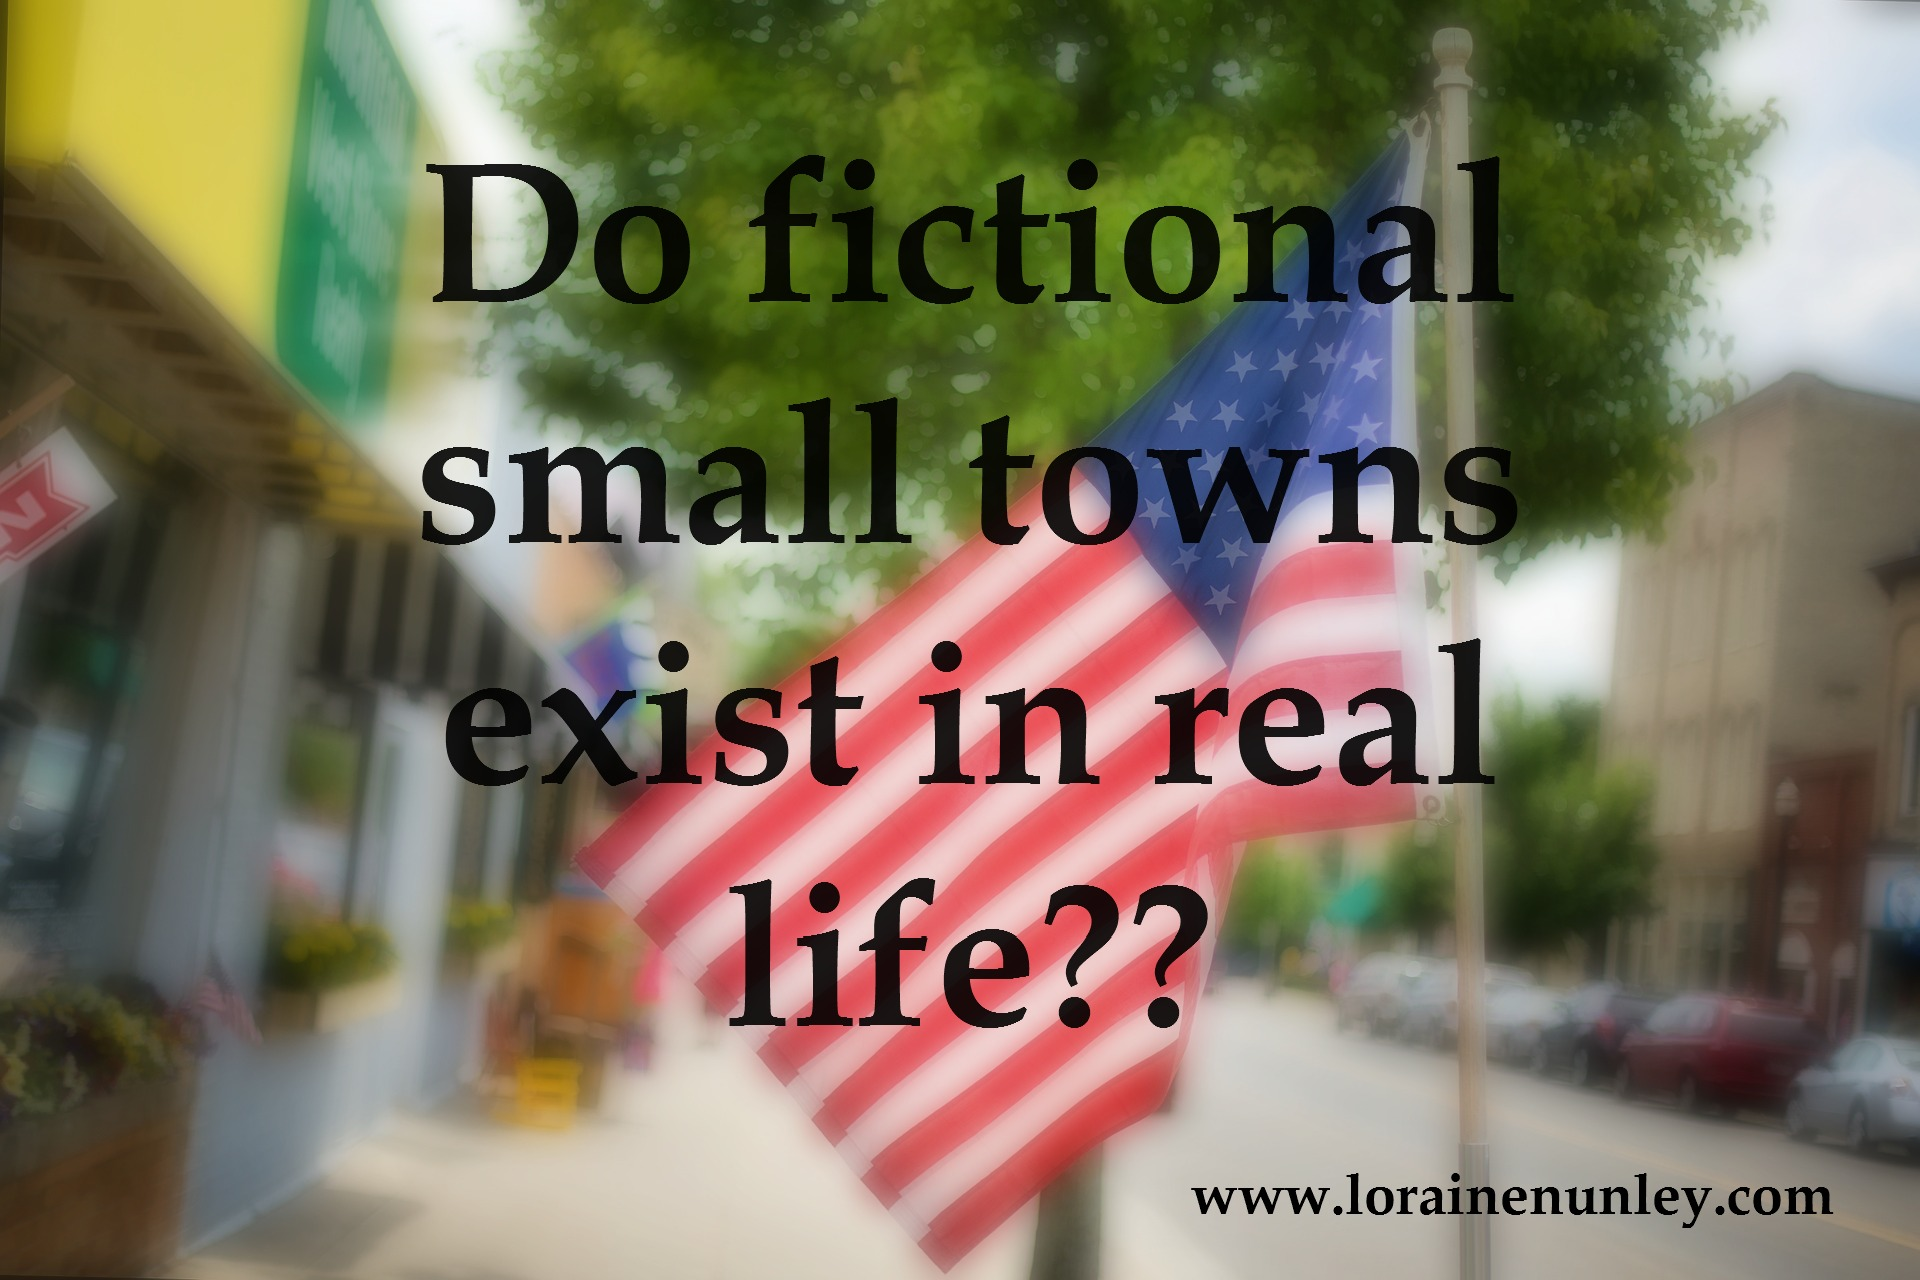 Do fictional small towns exist in real life? (Repost)